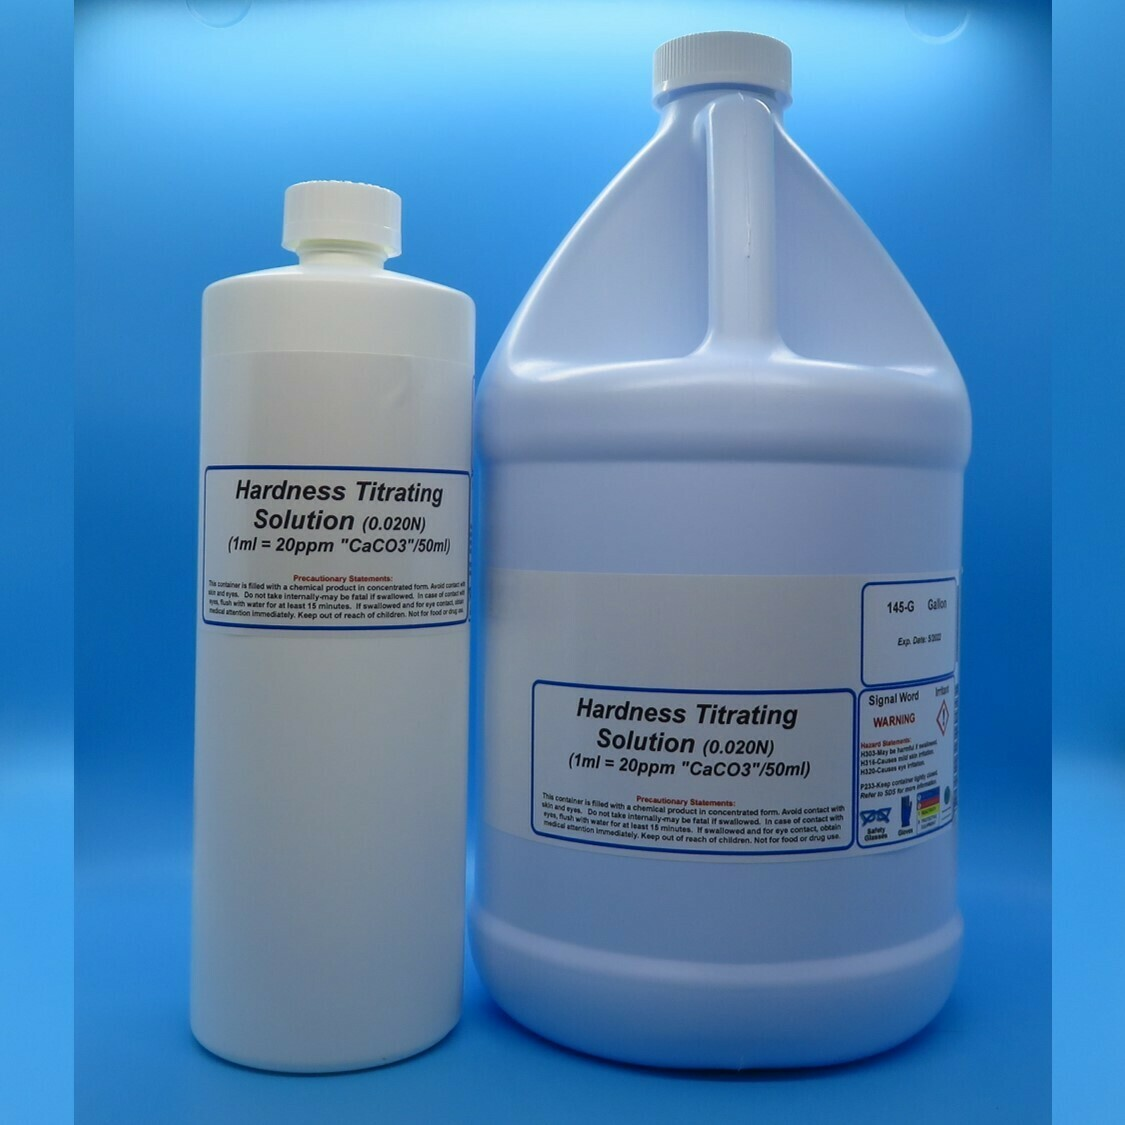 Hardness Titrating Solution (1 ml = 20 ppm CaCO3/50 ml)